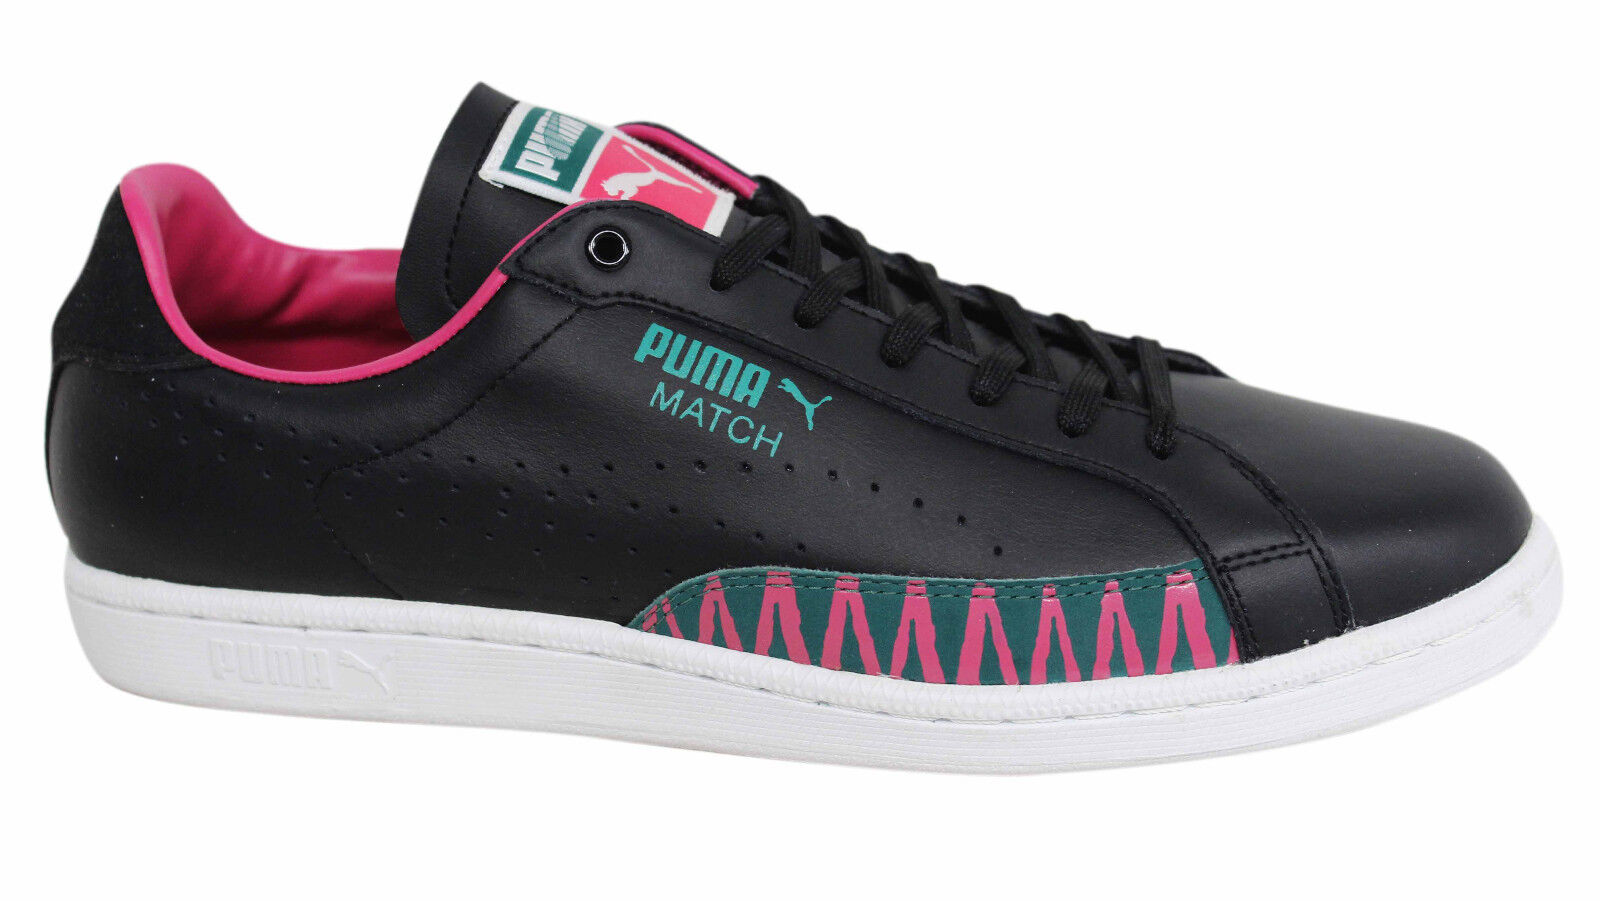 Puma Match Ltd Lace Up Negro Synthetic 349037 Hombre Trainers 349037 Synthetic 01 d136 especial de tiempo limitado 336c13